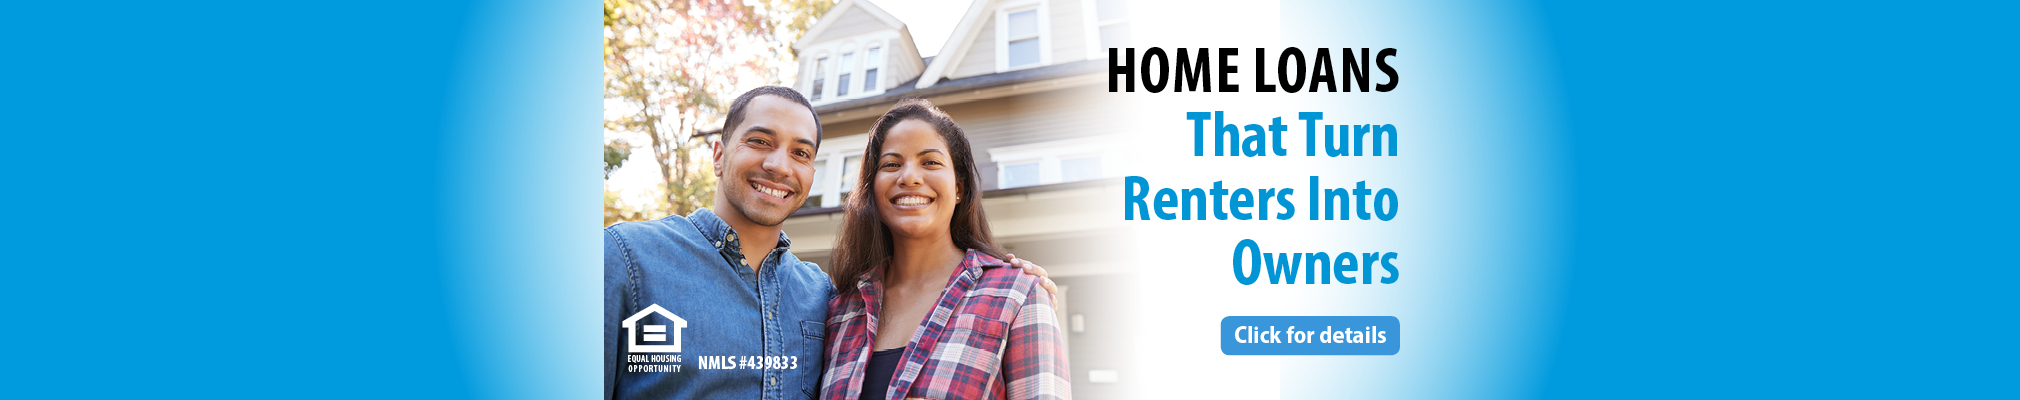 HOME LOANS - Click for details!